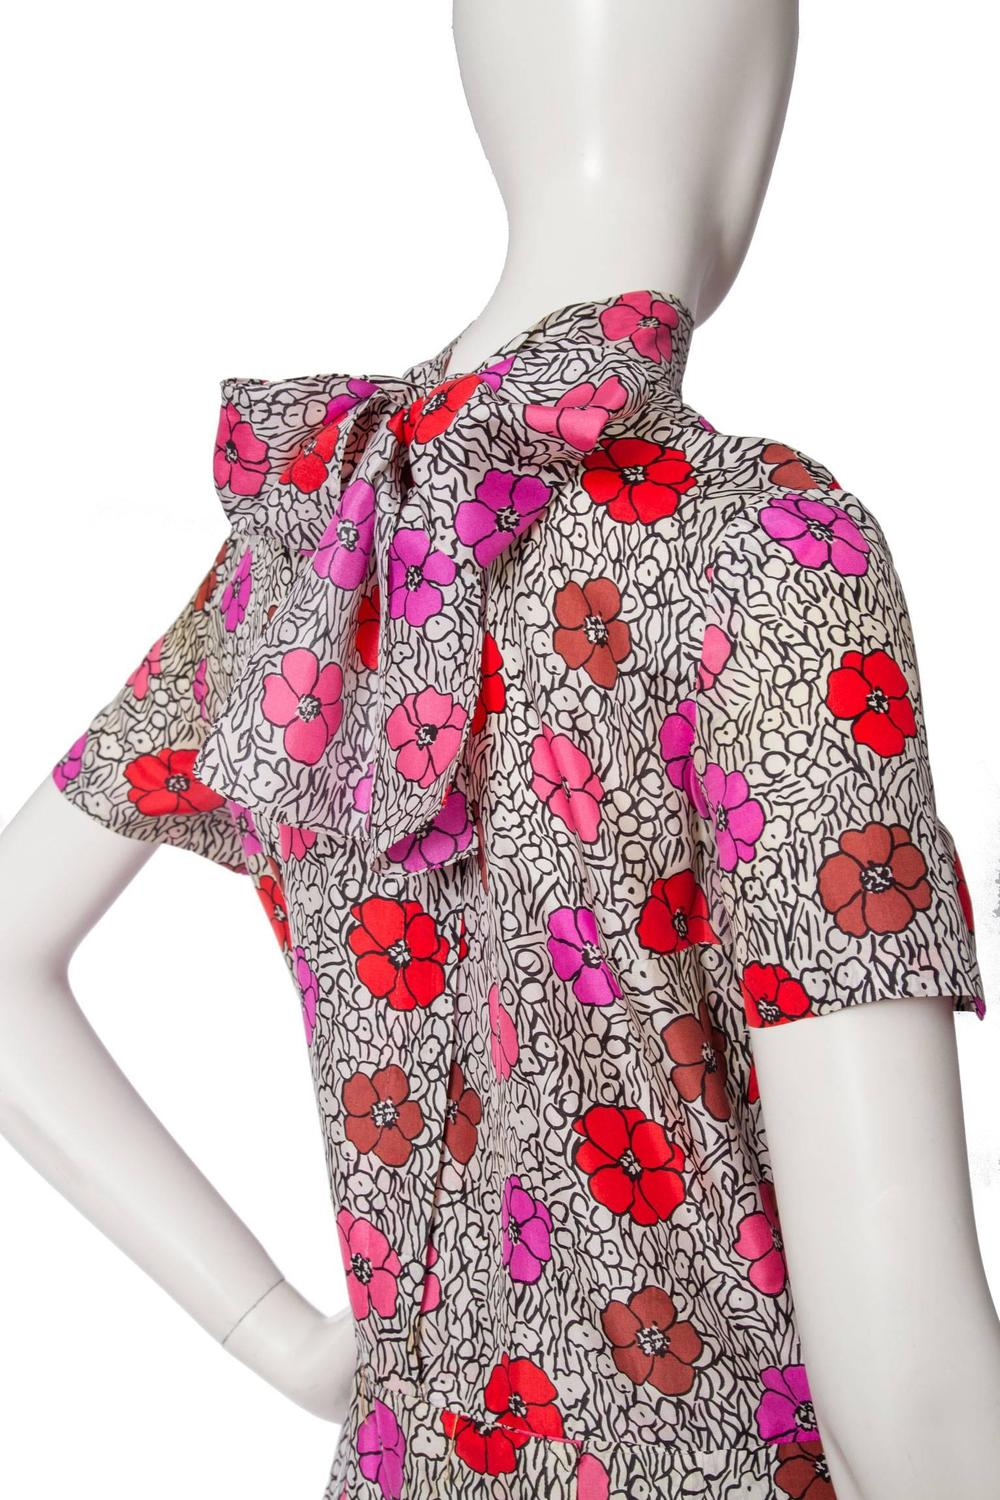 1960s floral chanel haute couture dress for sale at 1stdibs for Haute couture sale